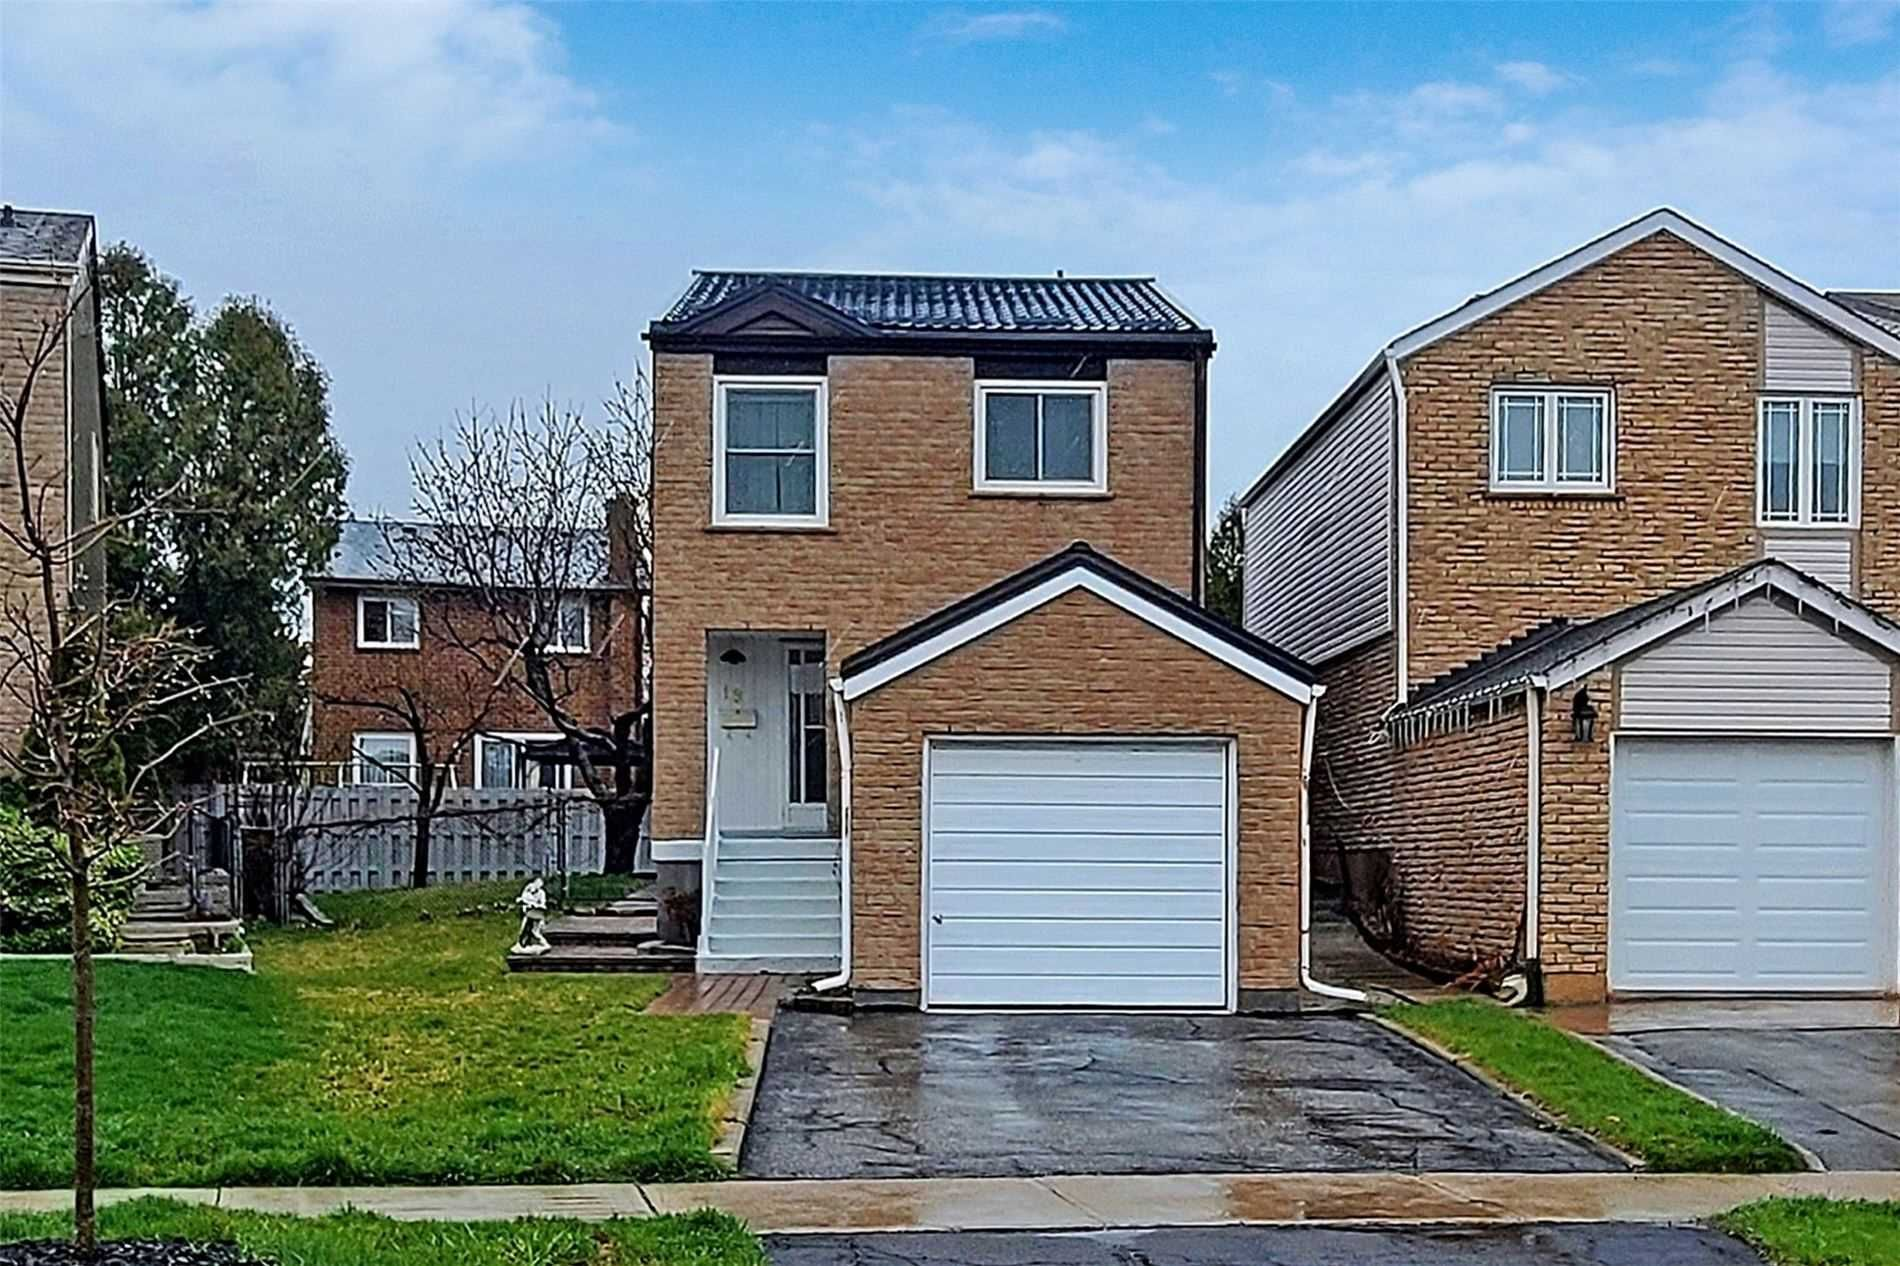 Main Photo: 19 Peachtree Place in Vaughan: Glen Shields House (2-Storey) for sale : MLS®# N5195499